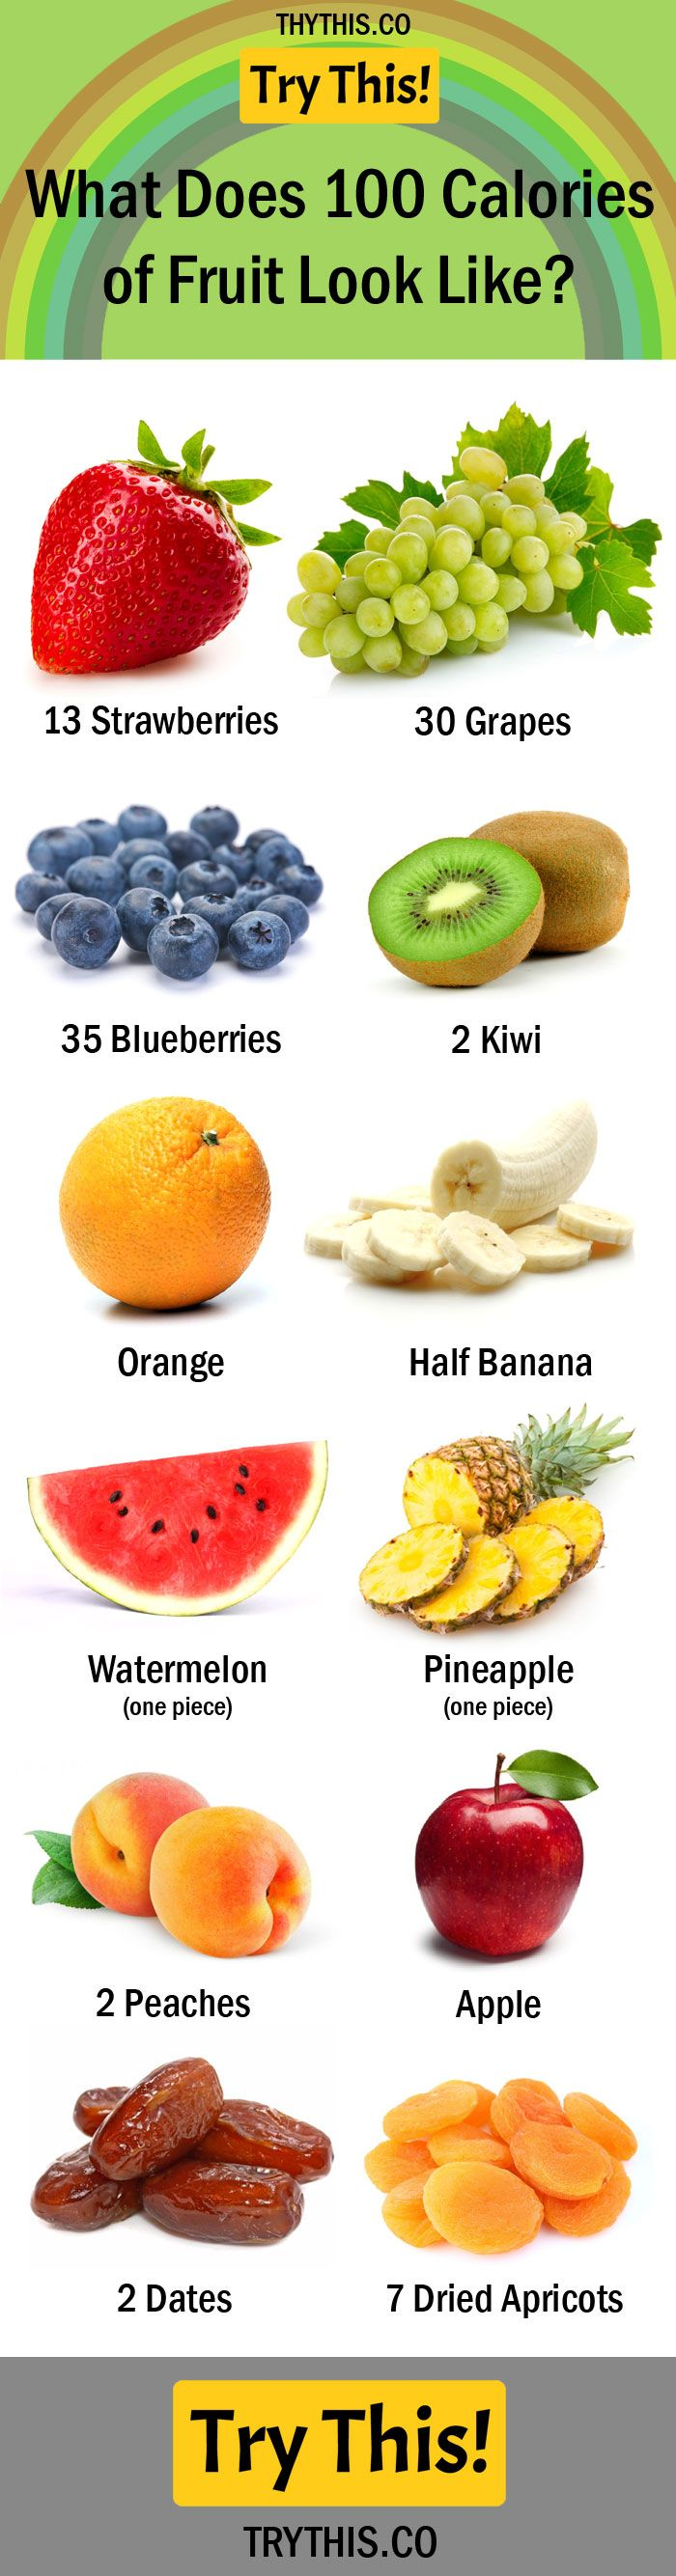 What Does 100 Calories of Fruit Look Like?